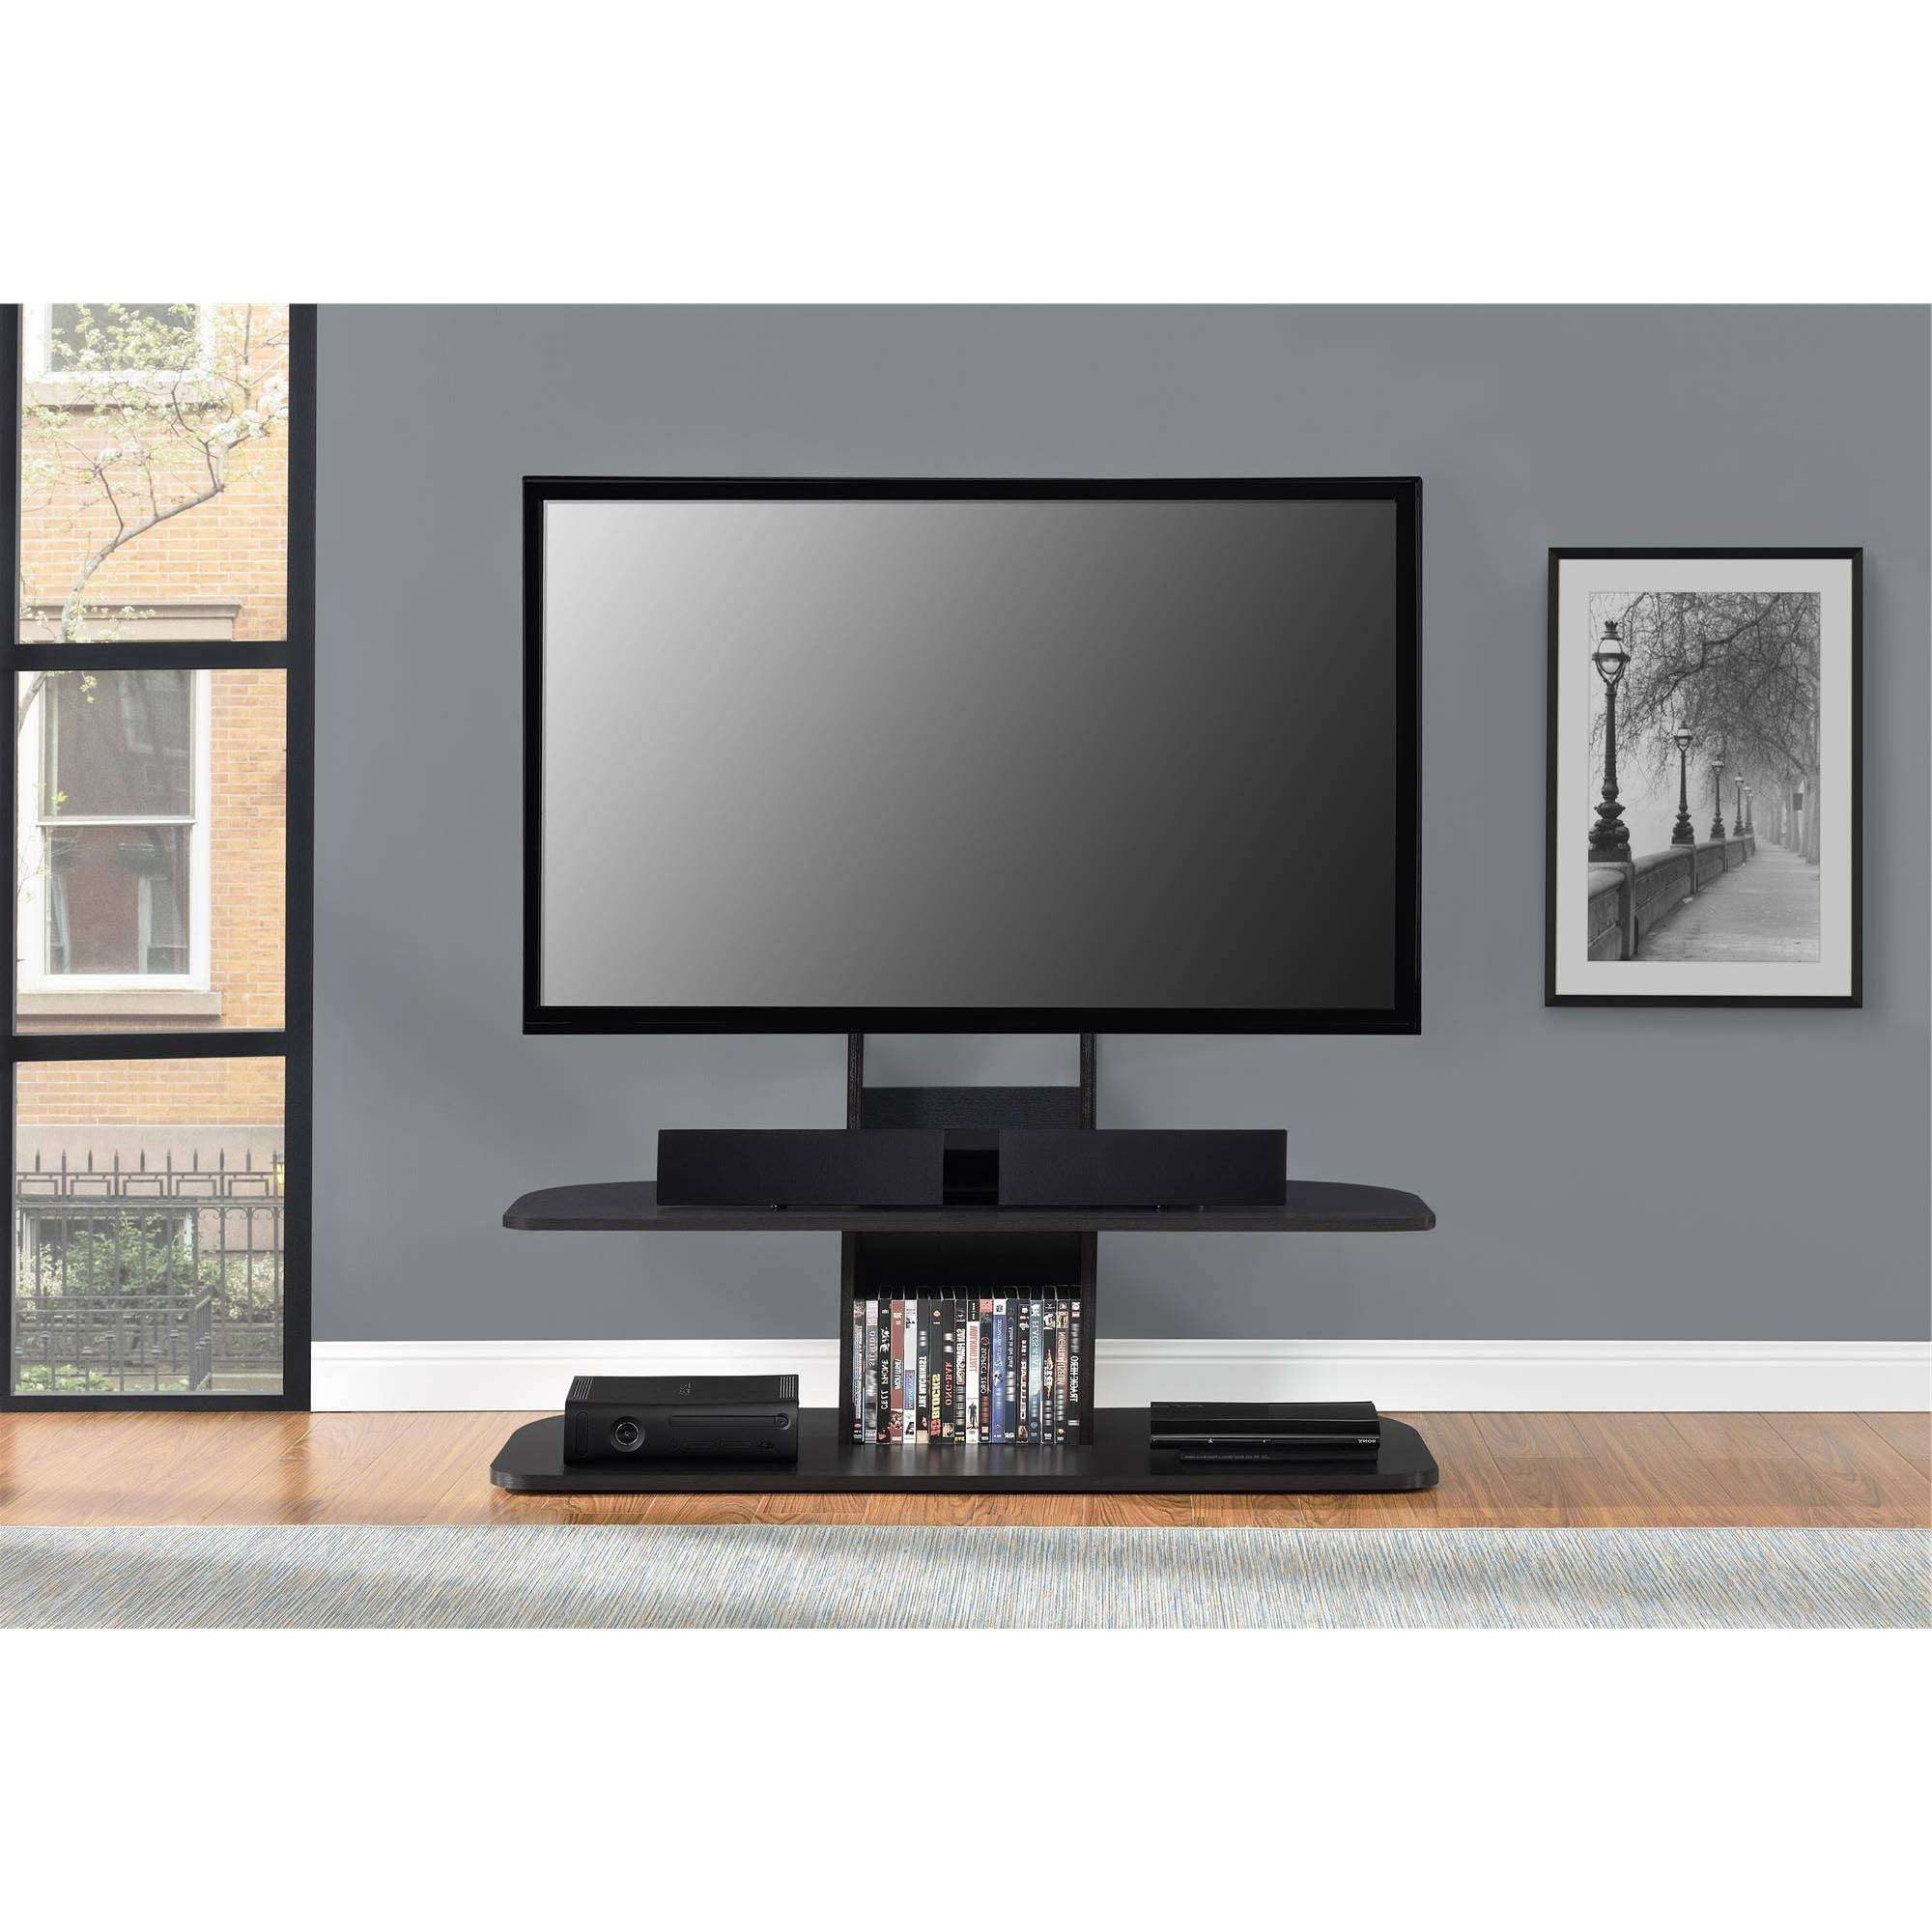 Tv Stands & Entertainment Centers – Walmart With Regard To Black Corner Tv Stands For Tvs Up To (View 14 of 20)